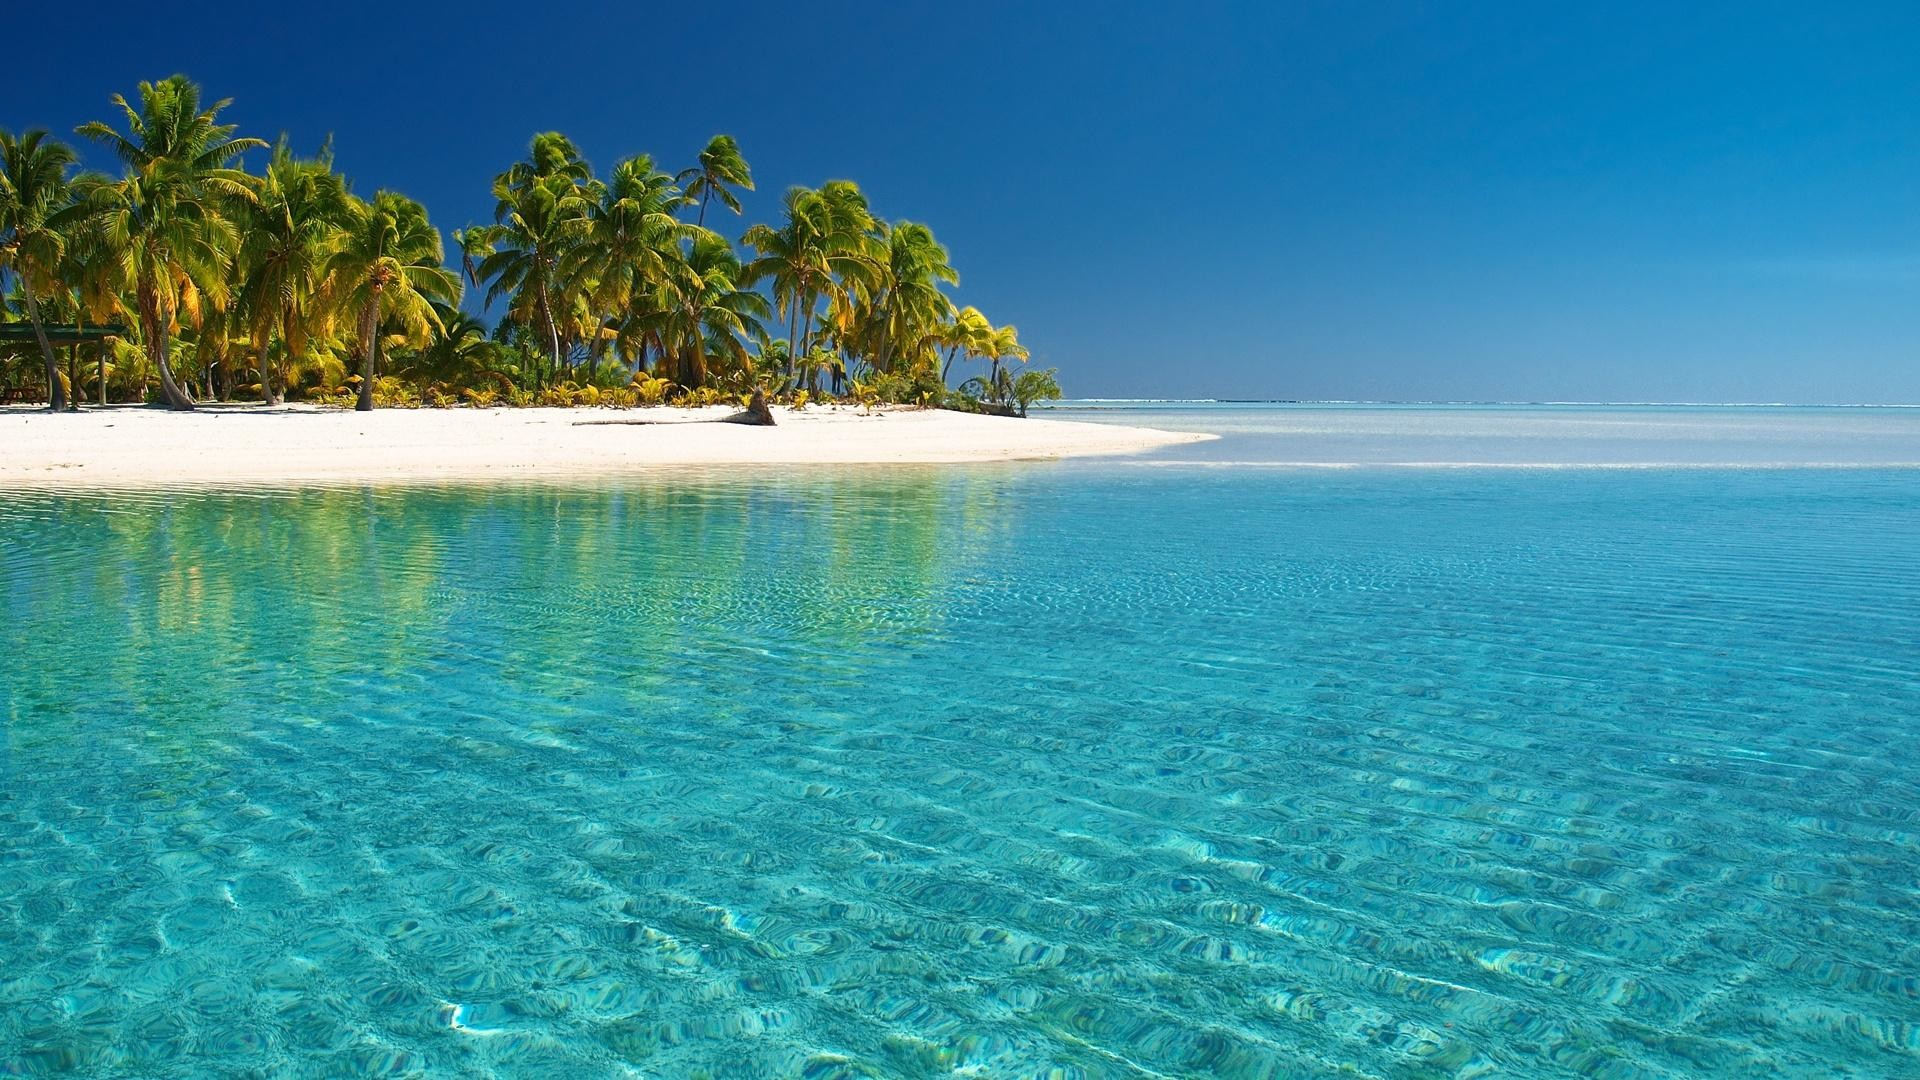 1920x1080 Crystal Clear Beach HD Desktop Wallpaper, Background Image